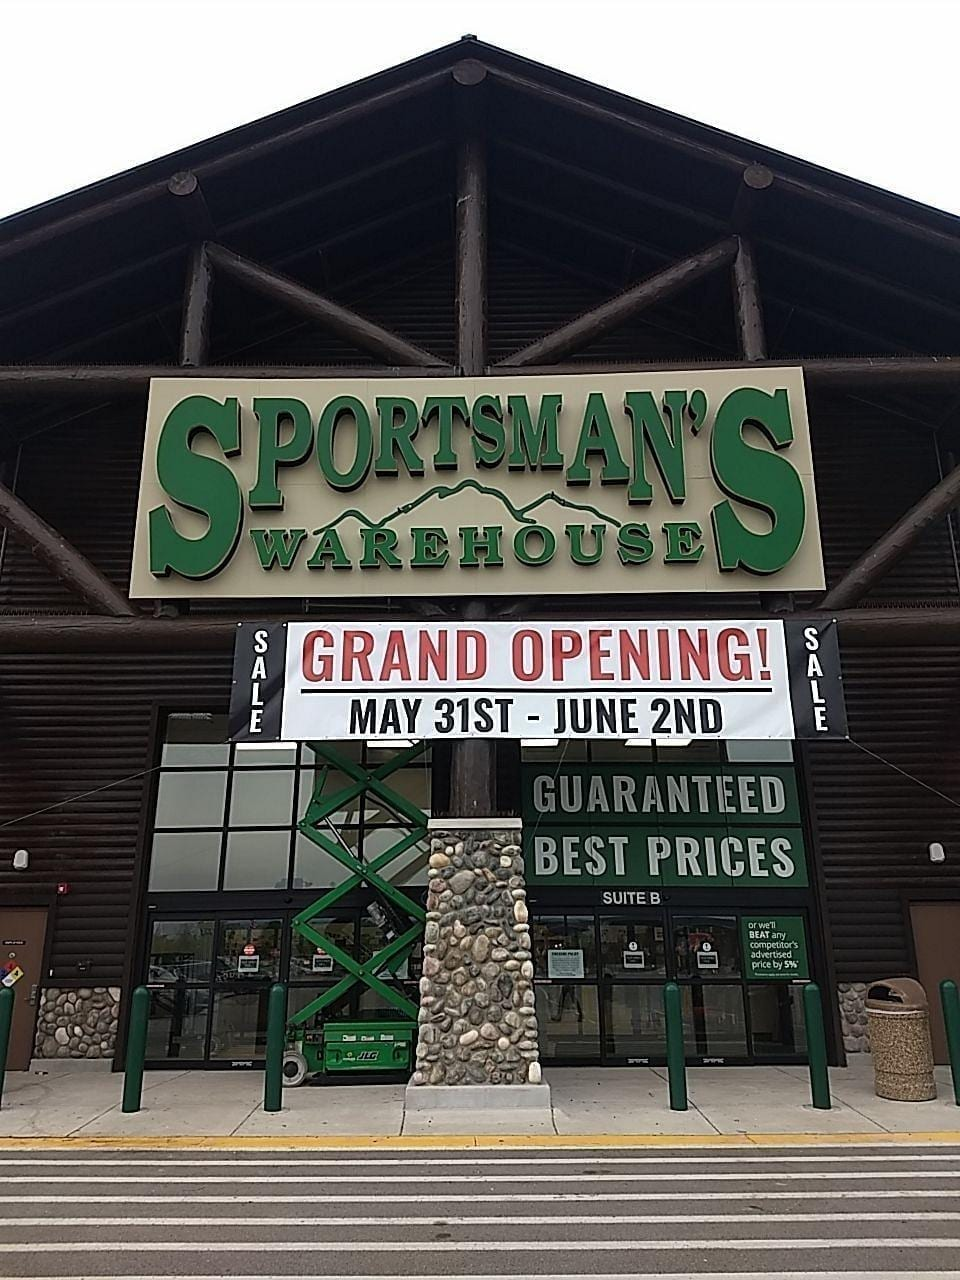 Sportsman's Warehouse backer illuminating canopy storefront sign channel Letters black returns